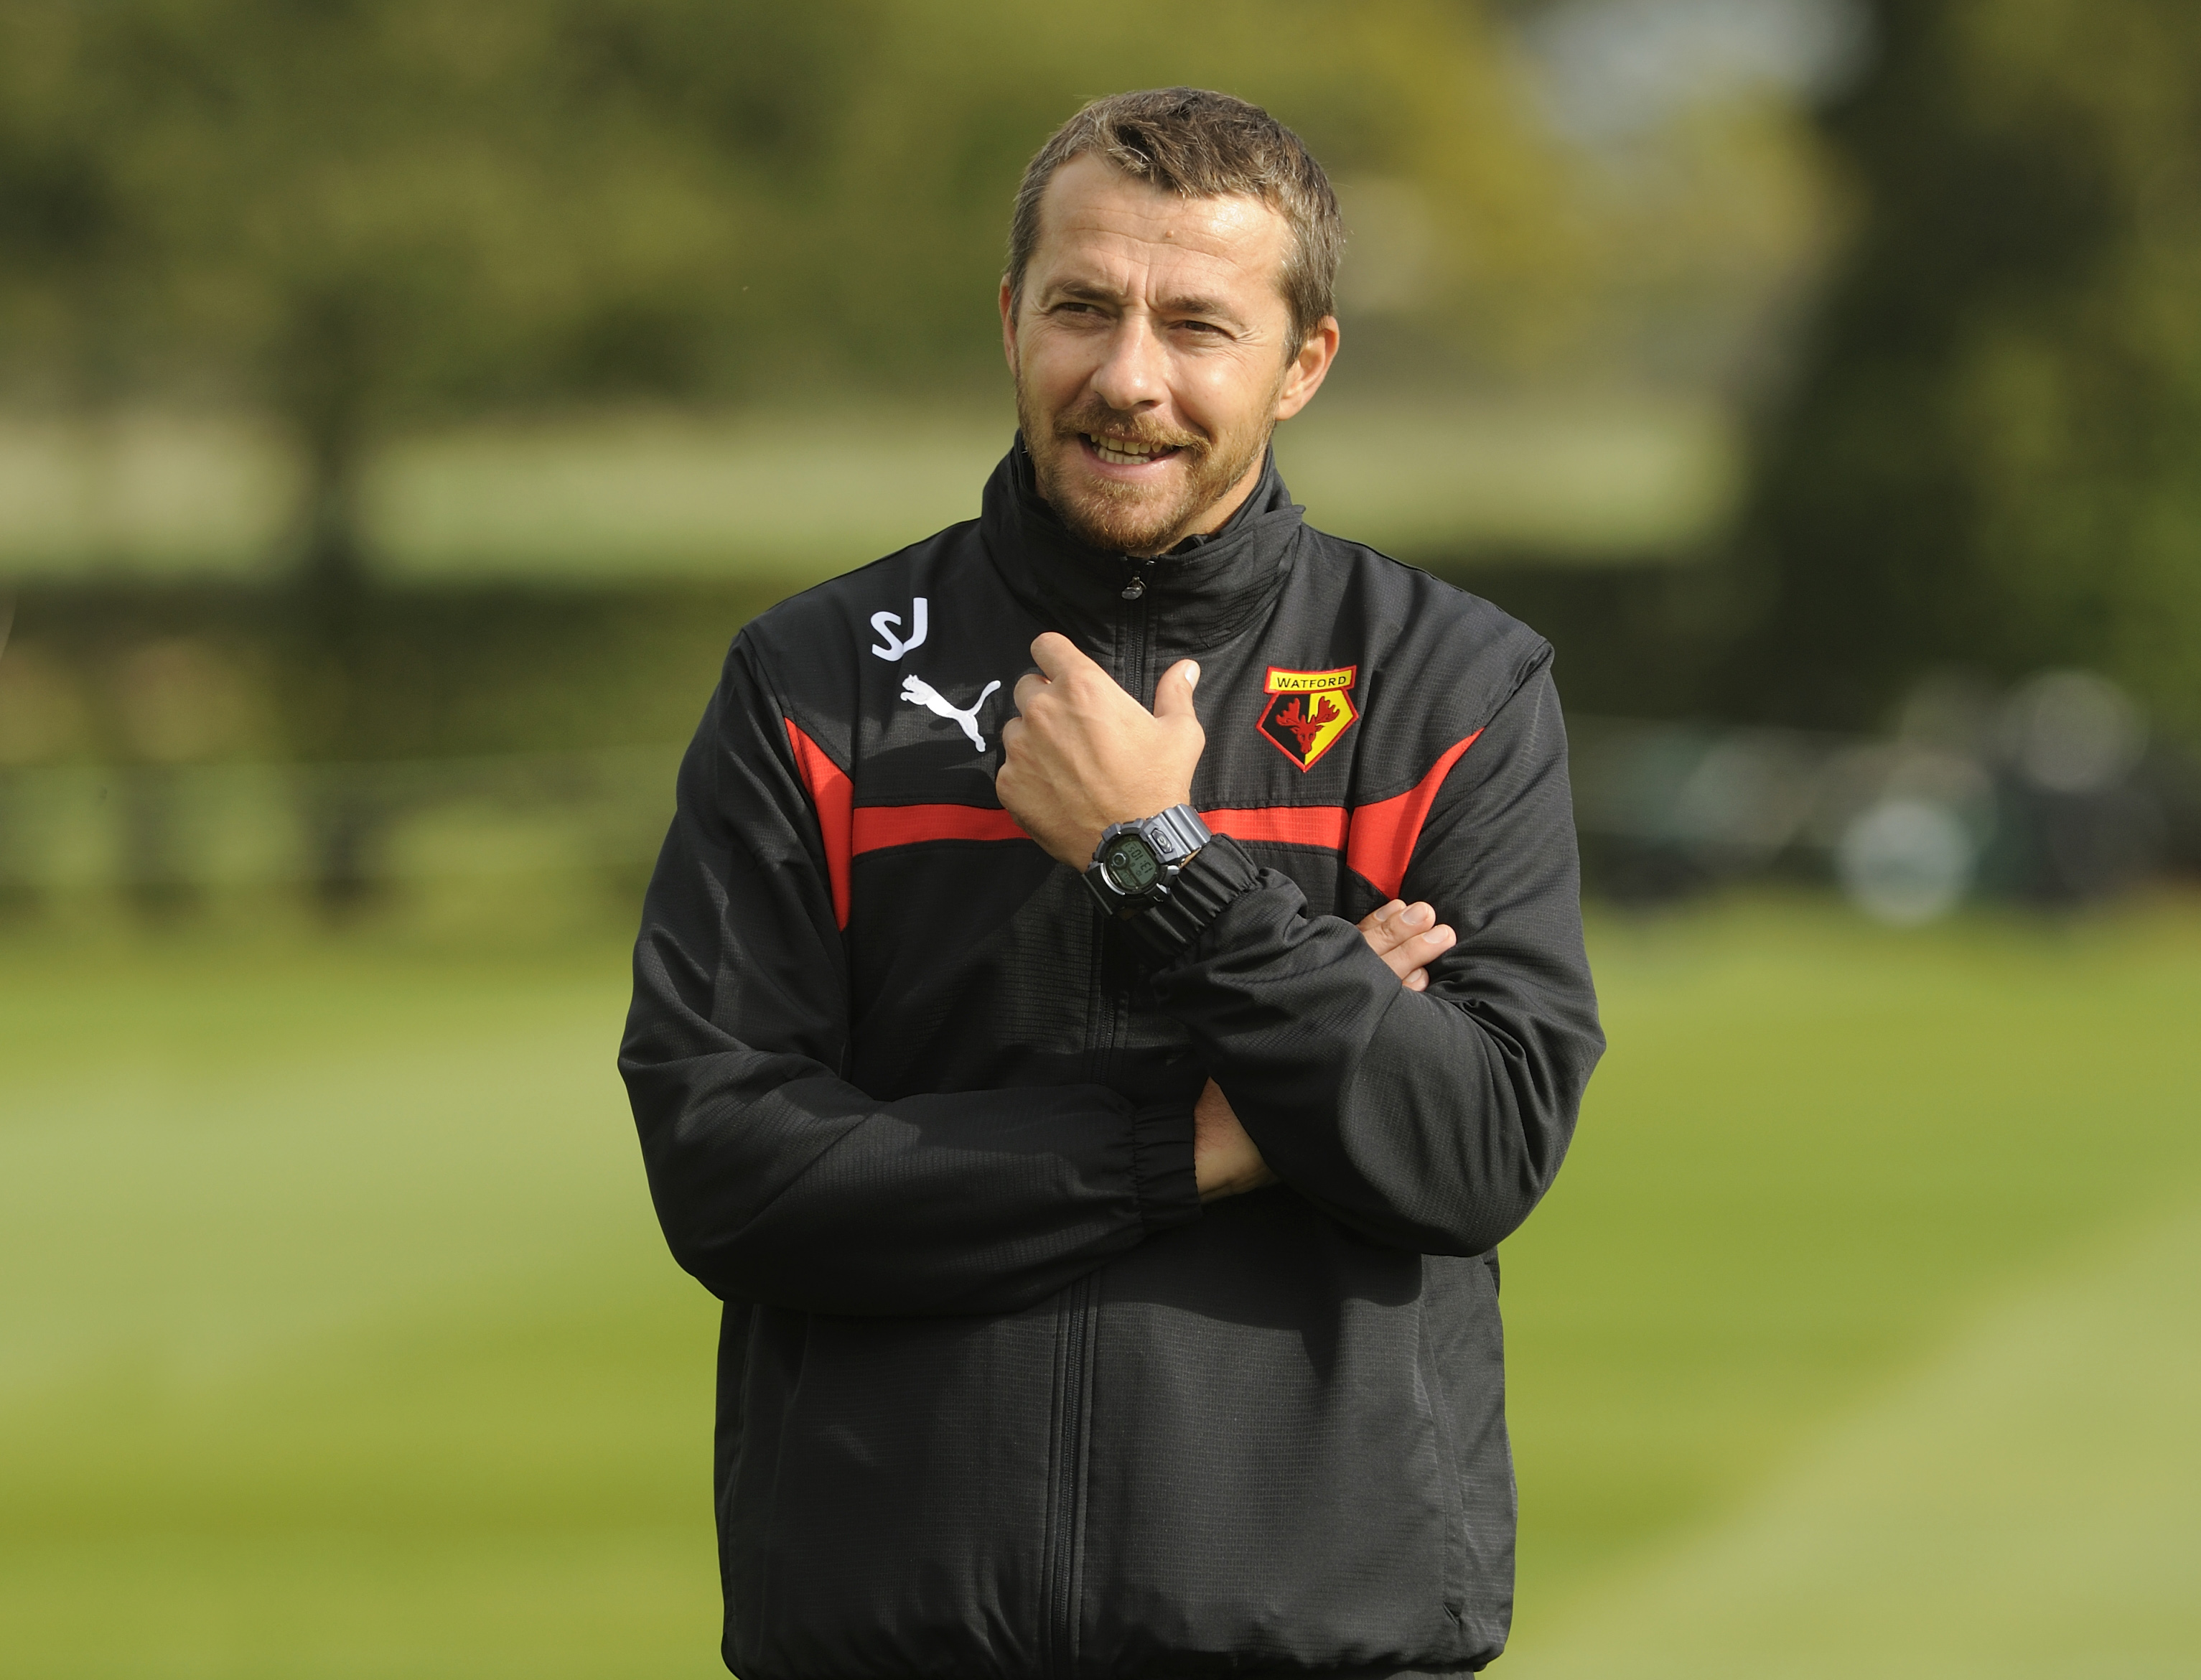 New Watford coach is going for gold